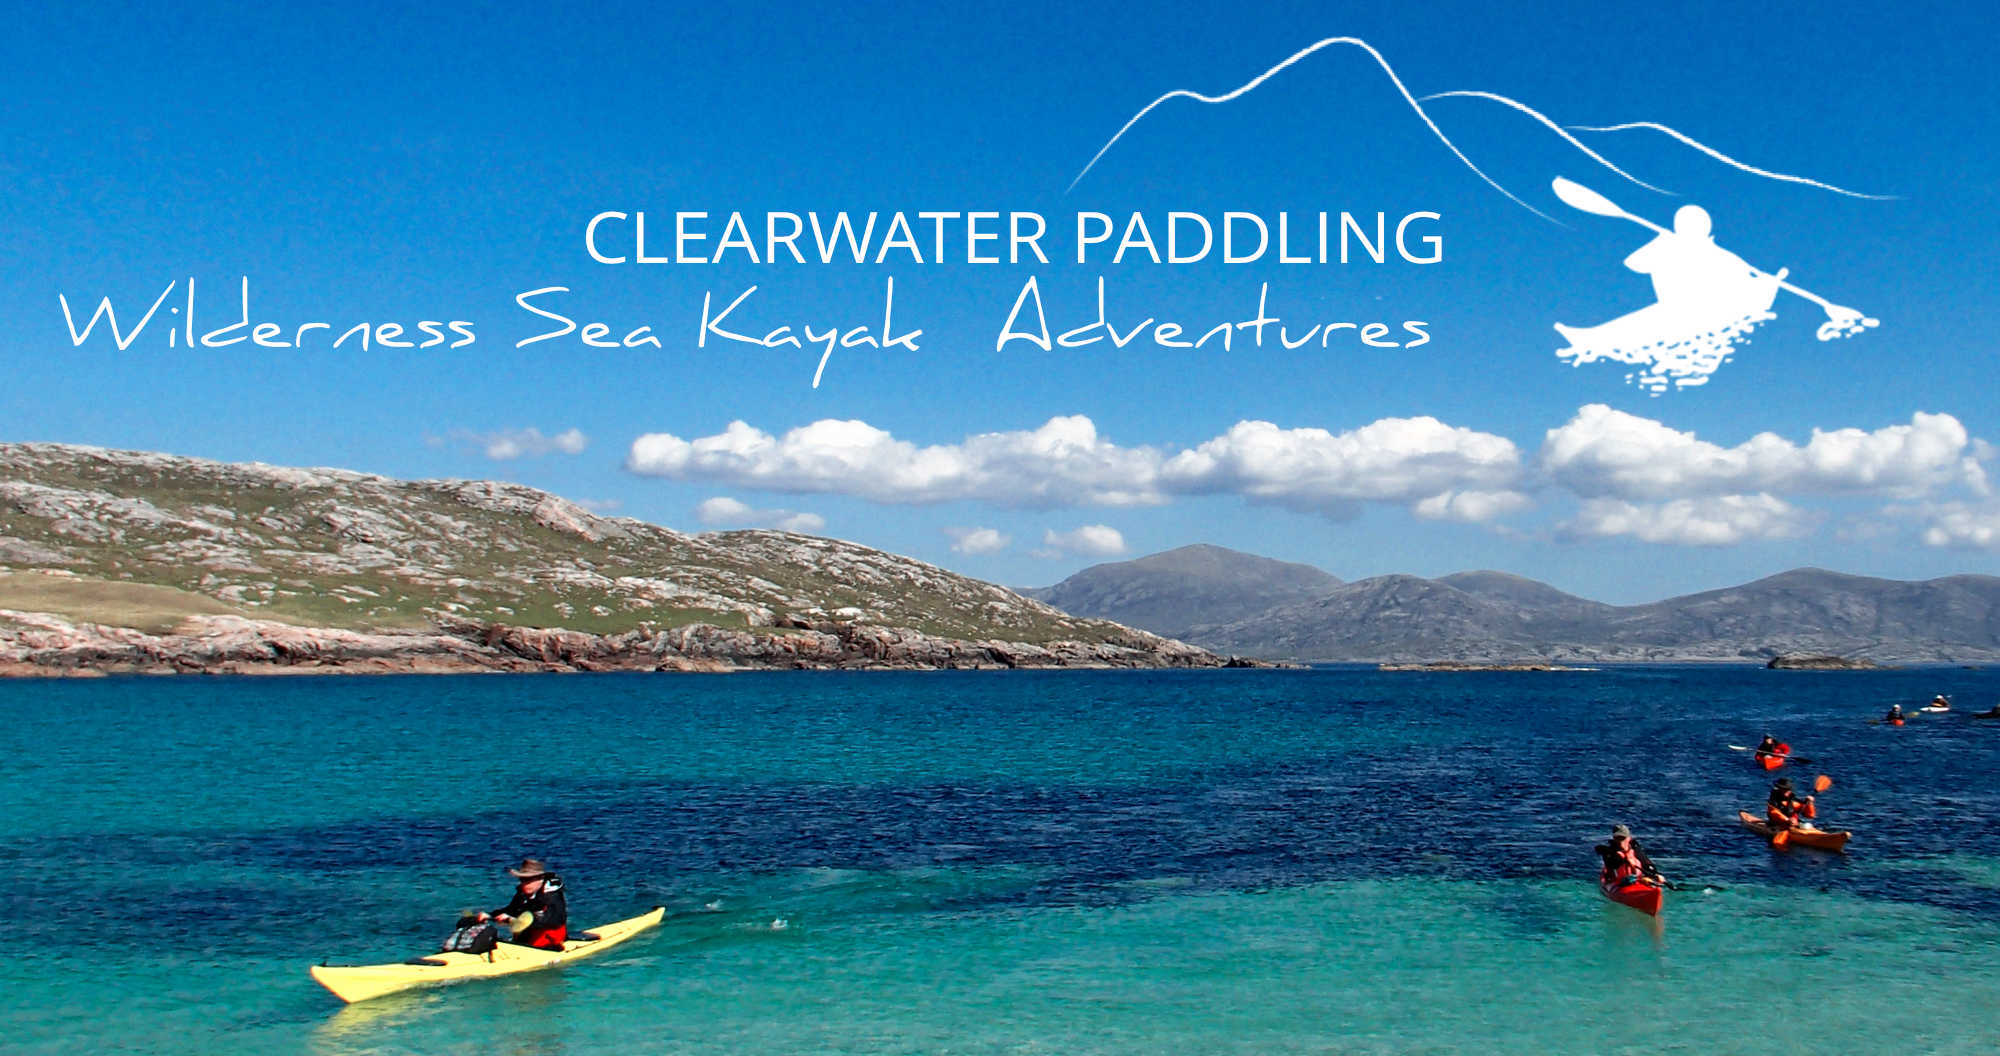 Clearwater Paddling Wilderness Sea Kayak Adventures banner